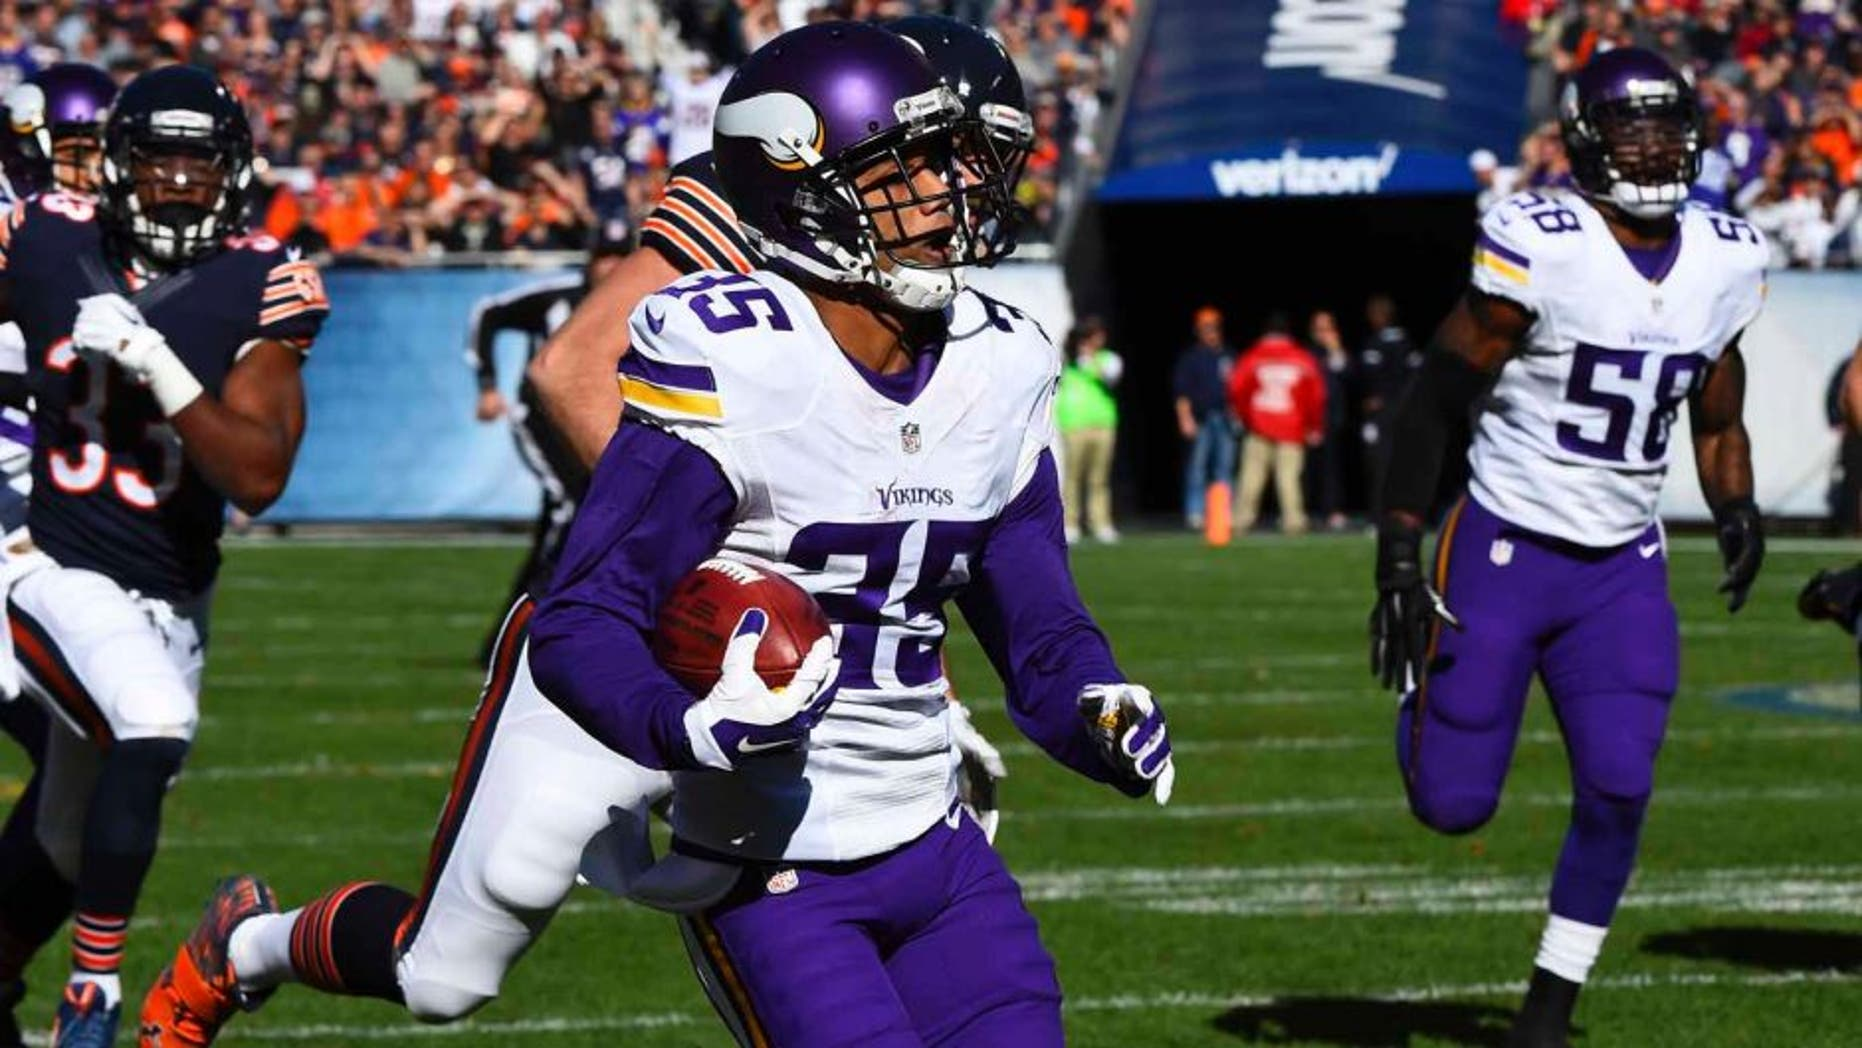 Minnesota Vikings cornerback Marcus Sherels returns a punt for a touchdown against the Chicago Bears during the first half at Soldier Field in Chicago on Sunday, Nov. 1, 2015.